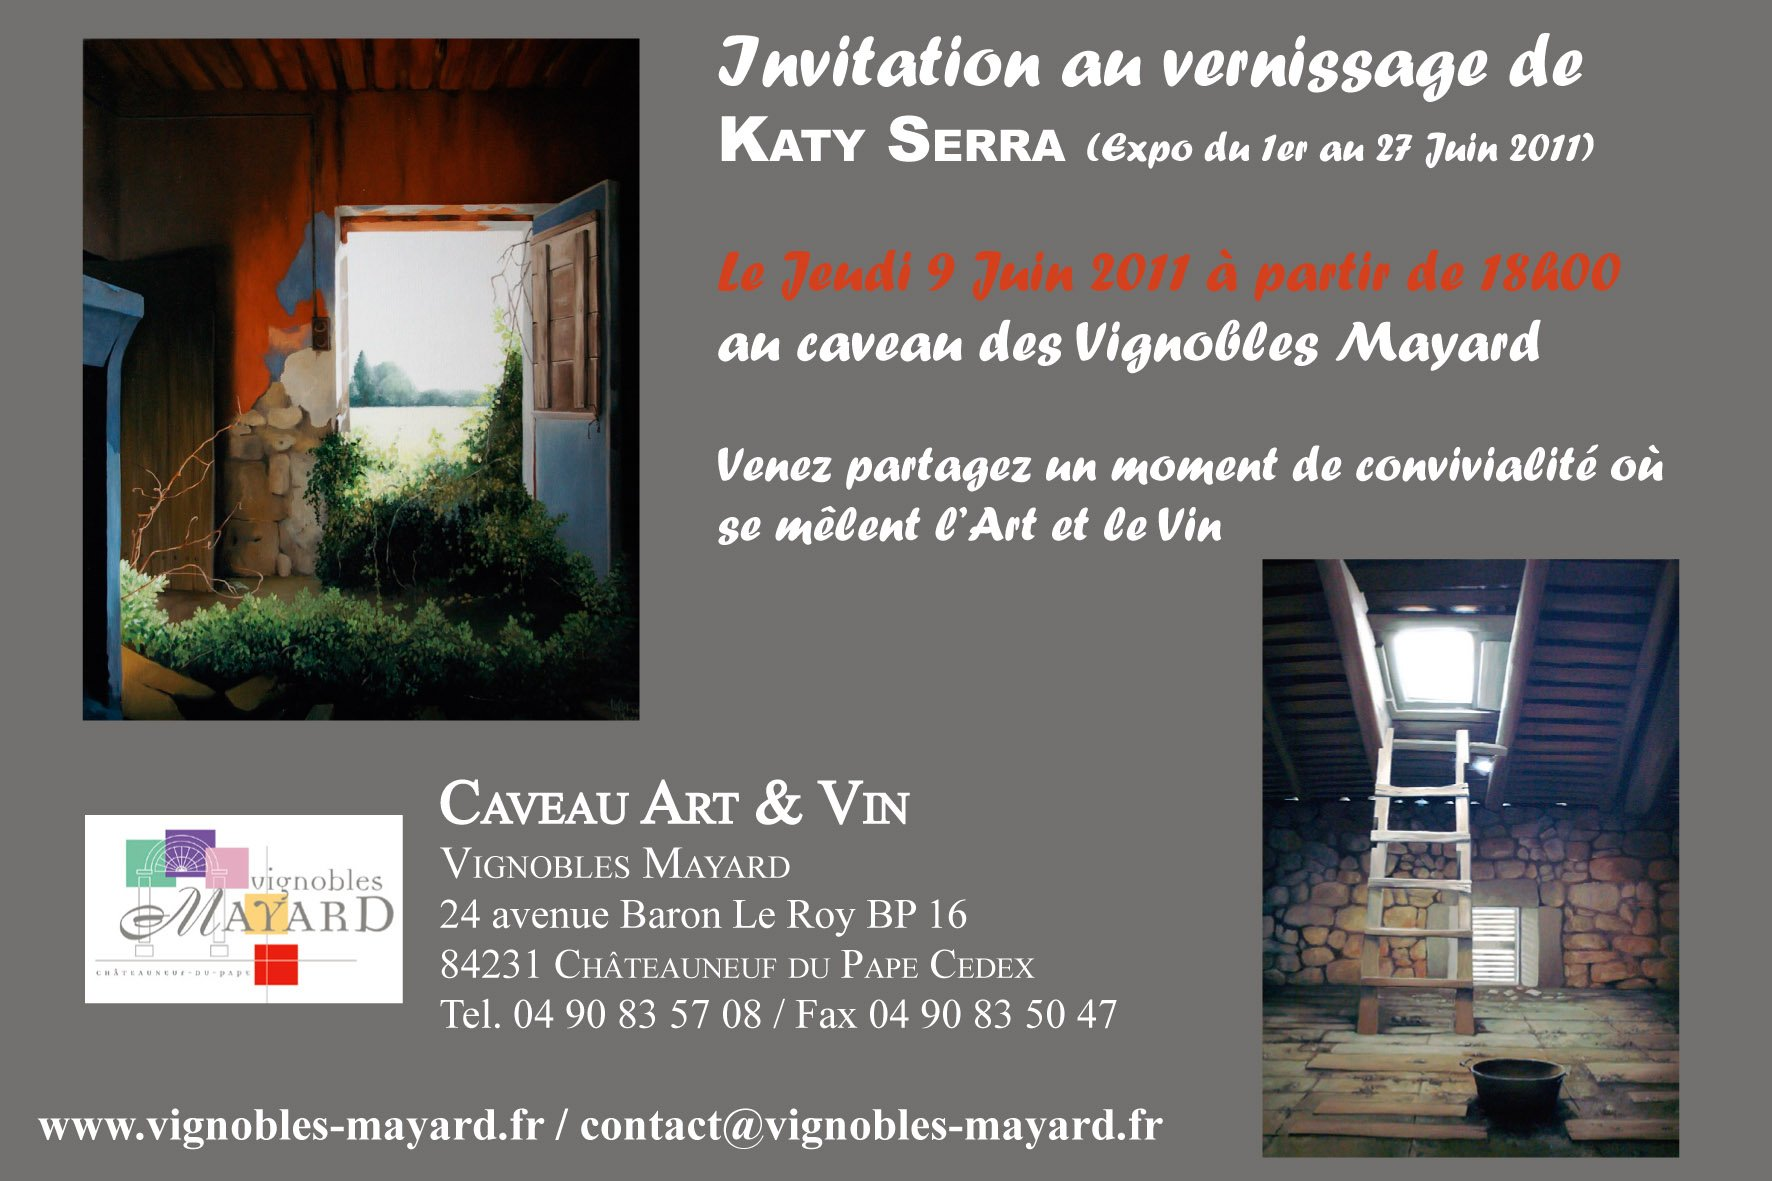 Invitation vernissage Katy Serra